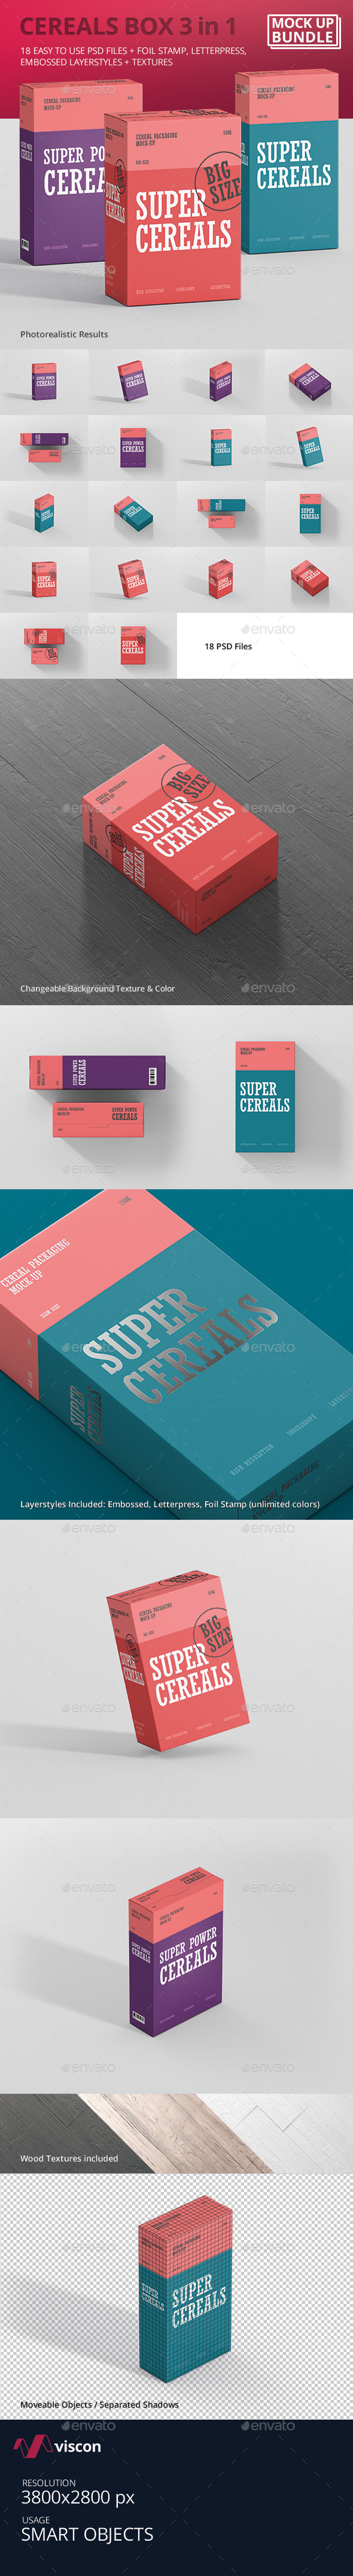 GraphicRiver Cereals Box Mockup Bundle 21029831